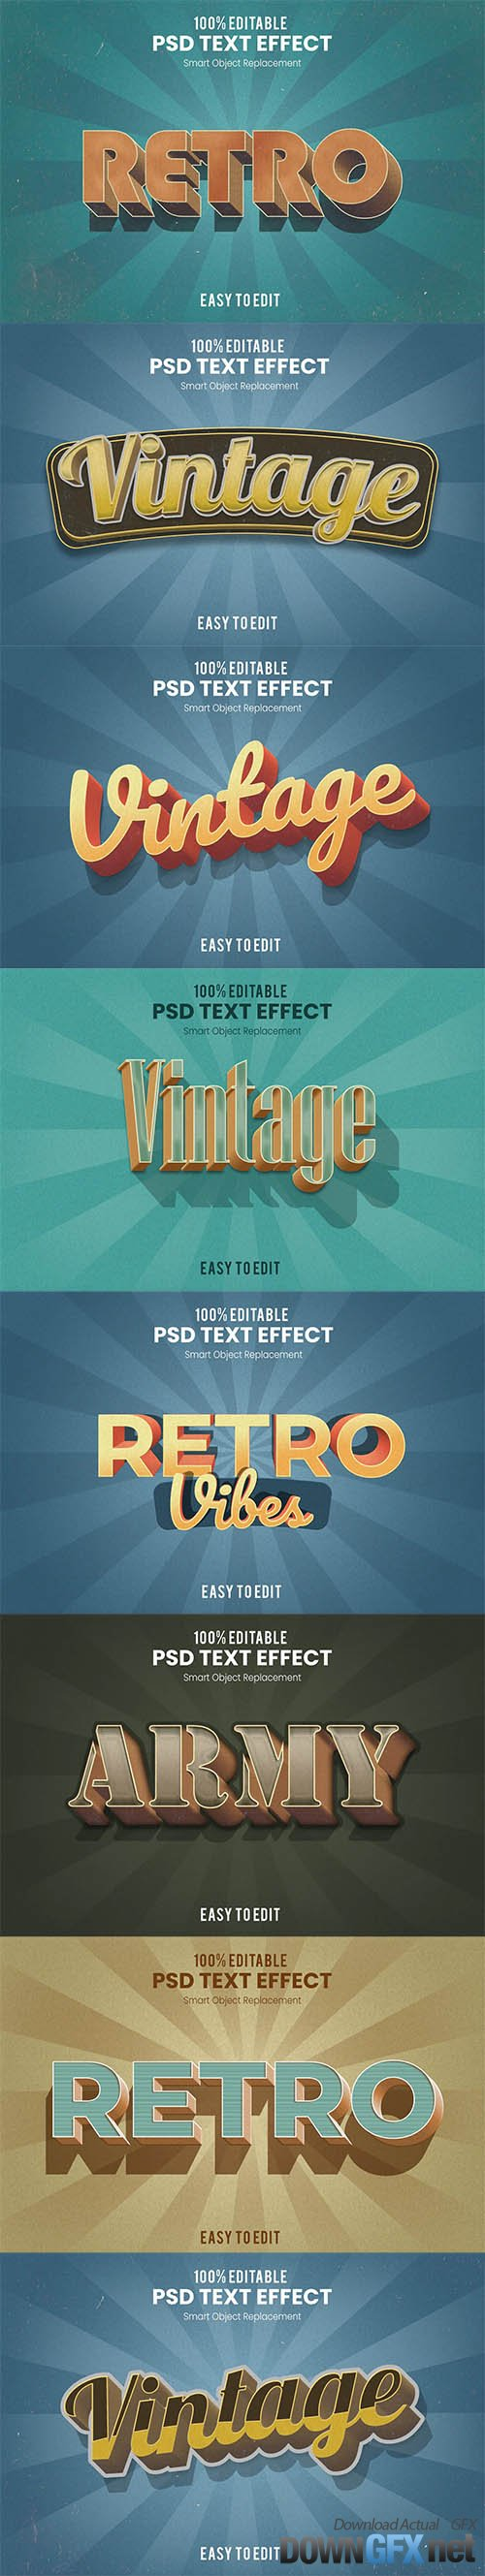 Retro 3D Text Effects Pack